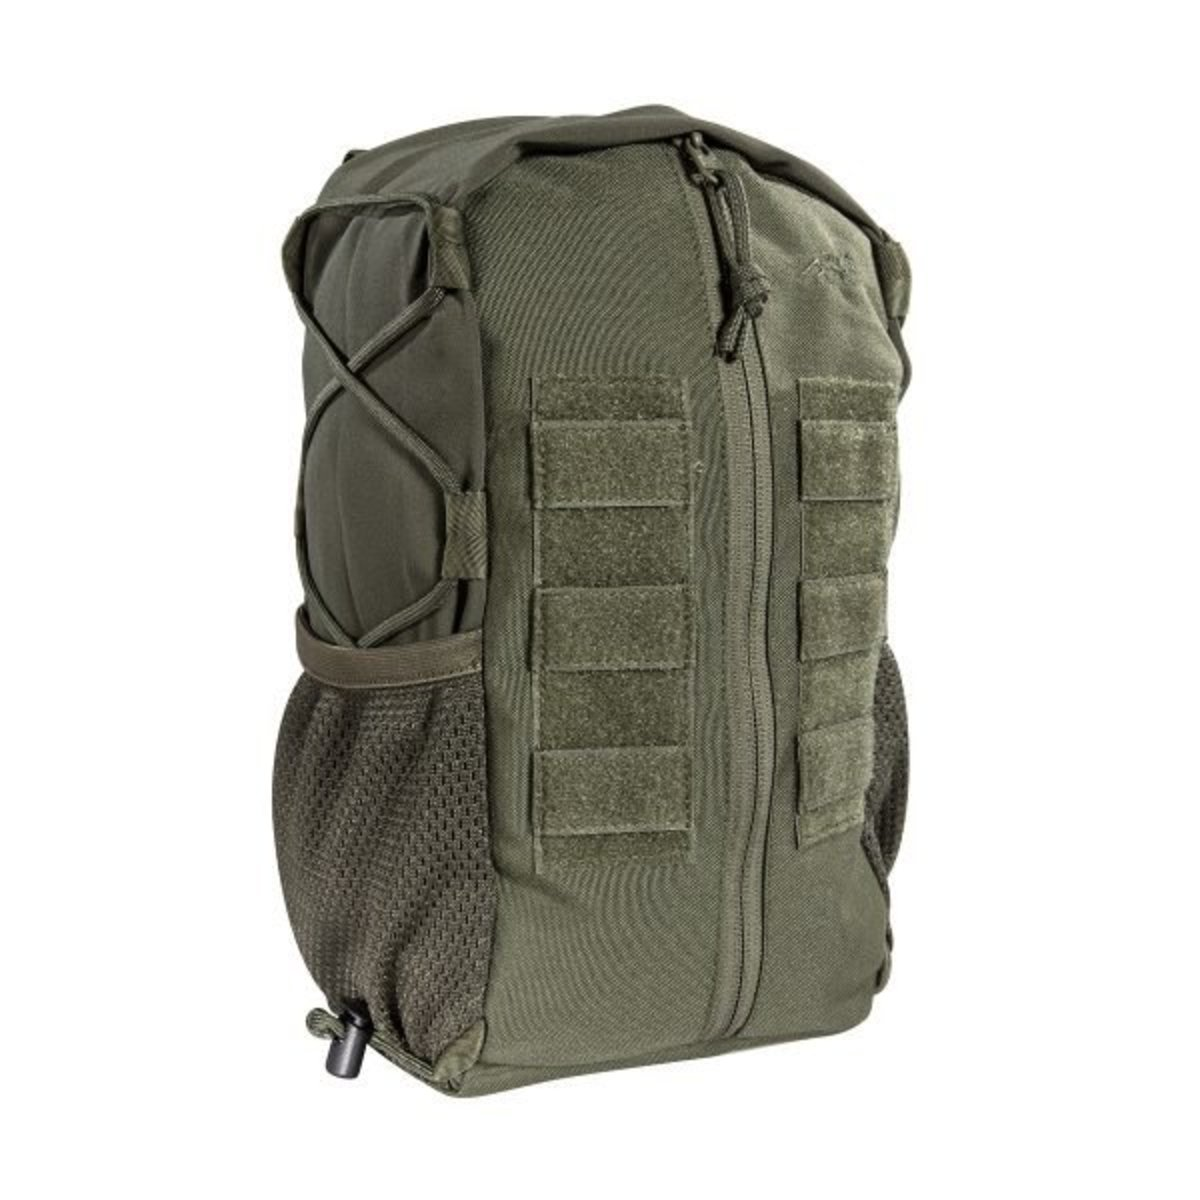 TT Tac Pouch 11 Olive